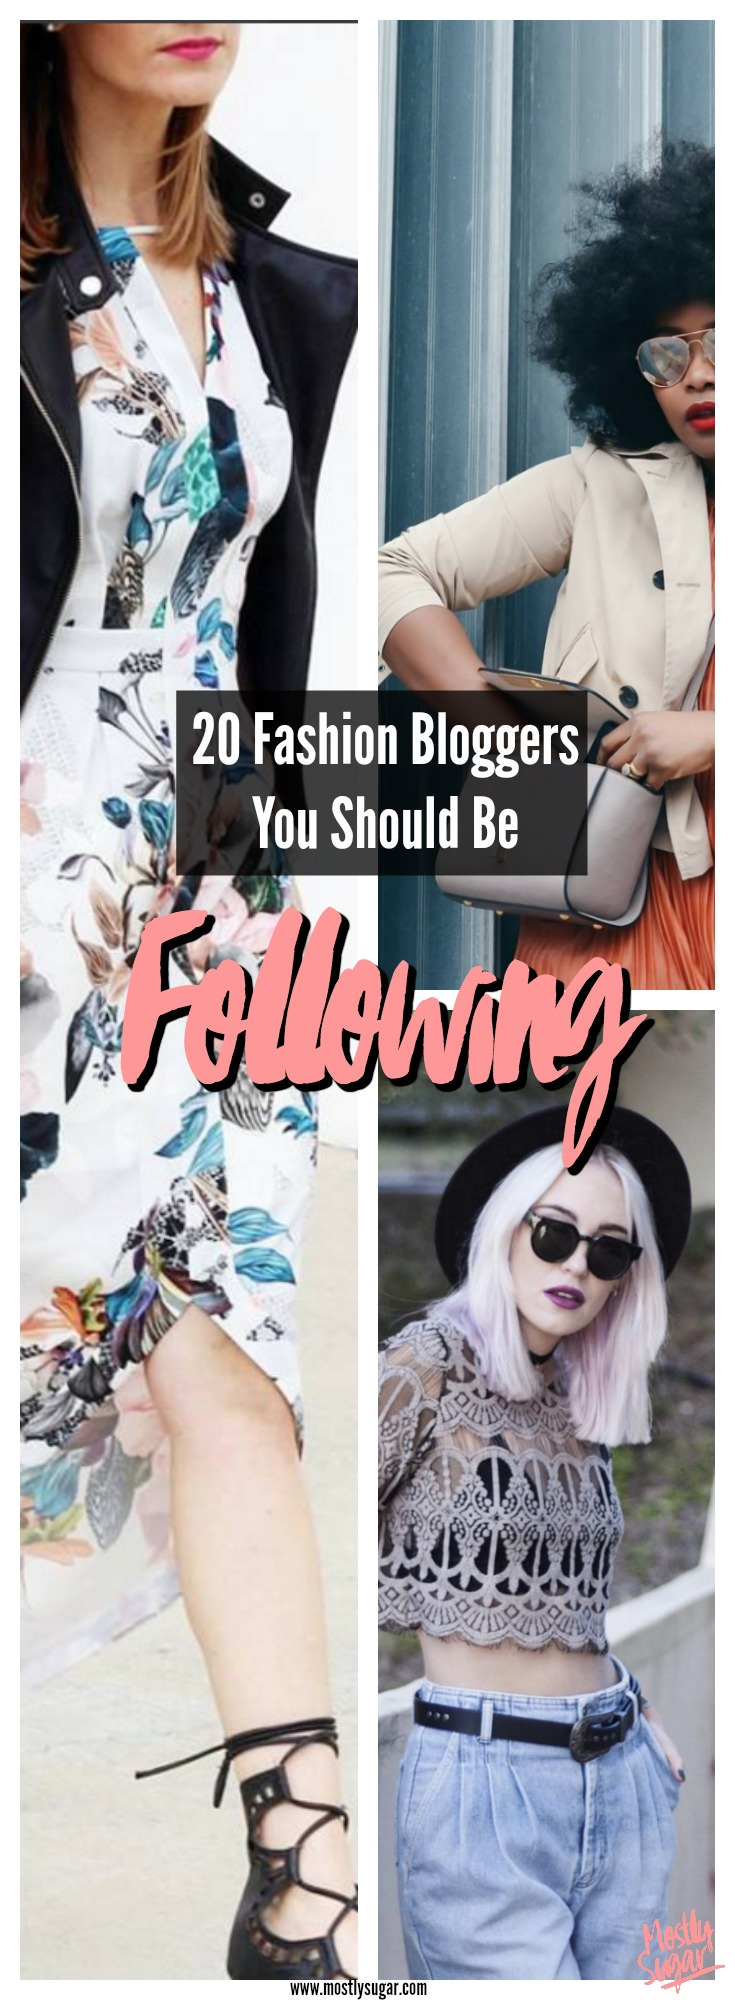 Fashion Bloggers on Instagram